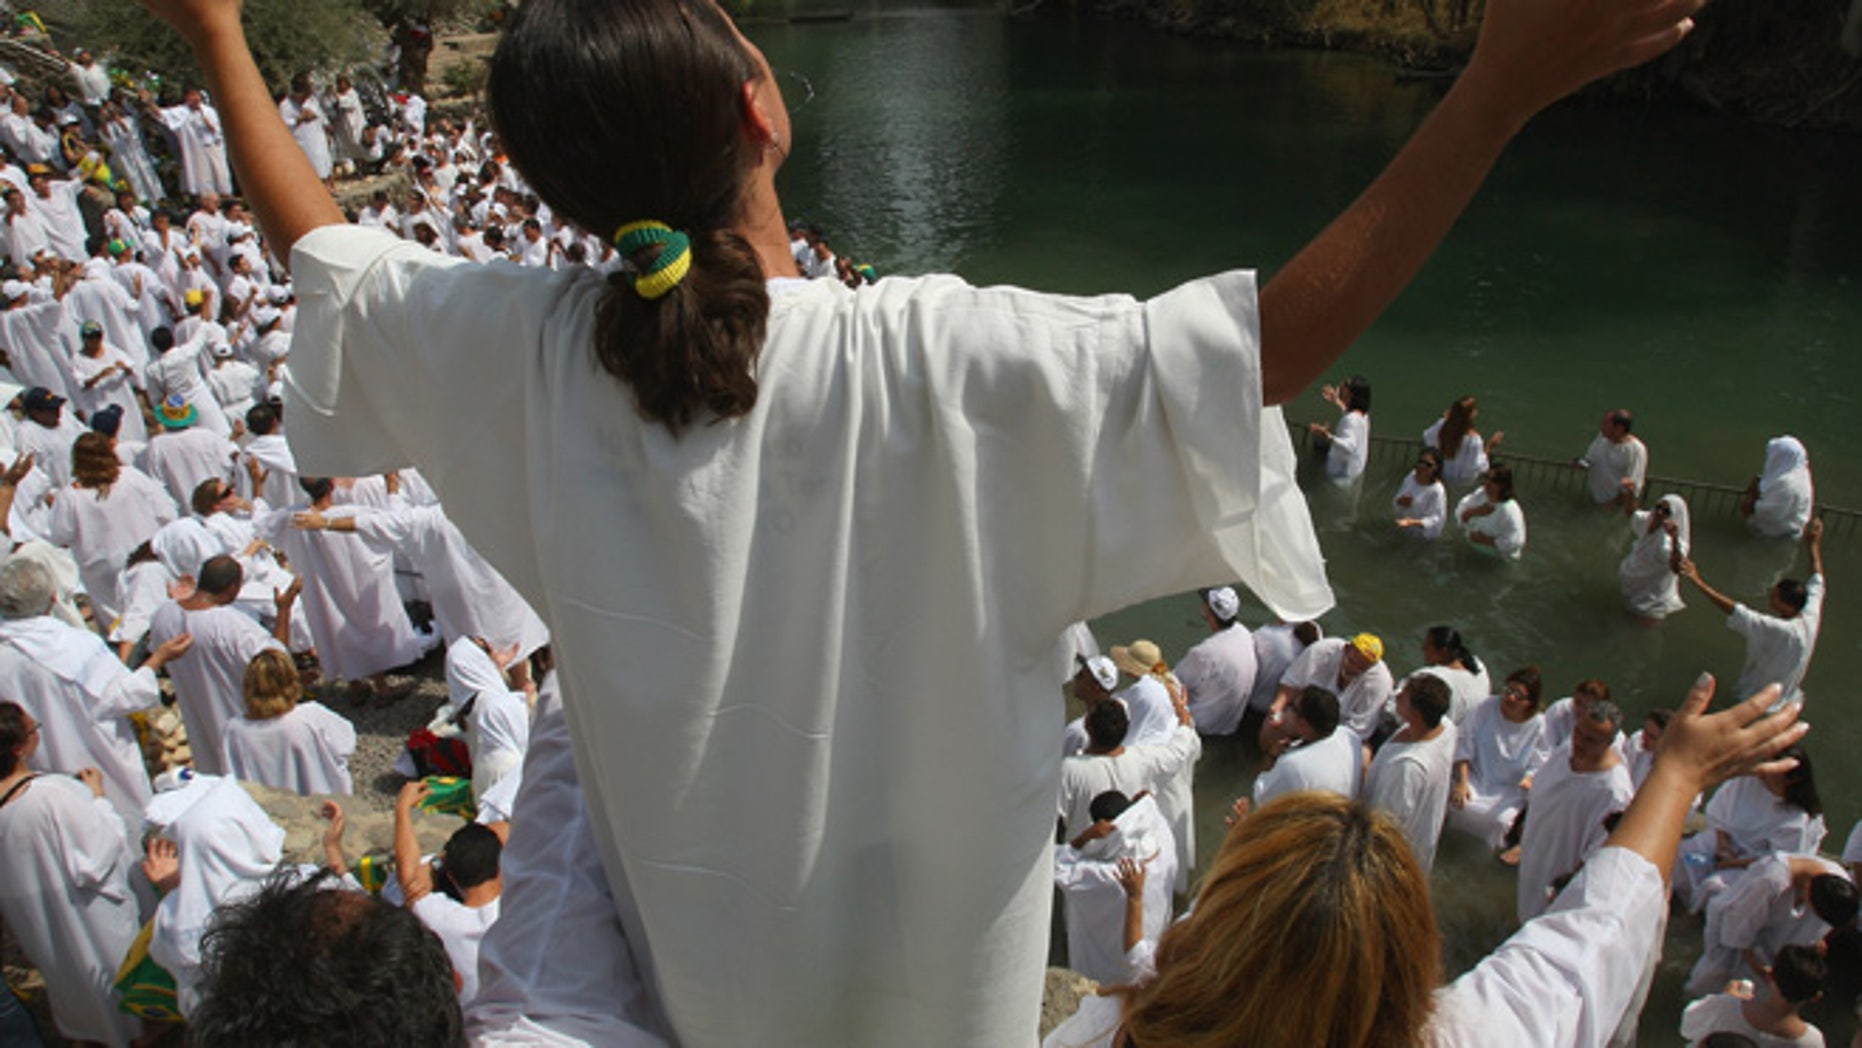 YARDENIT, ISRAEL - OCTOBER 01:  Brazilian Evangelist Christians raise their arms in prayer during their mass baptism ceremony in the Jordan River on October 1, 2007 at Yardenit in northern Israel. The group of 700 worshippers descended in the biblical river as part of their pilgrimage to the Holy Land.  (Photo by David Silverman/Getty Images)